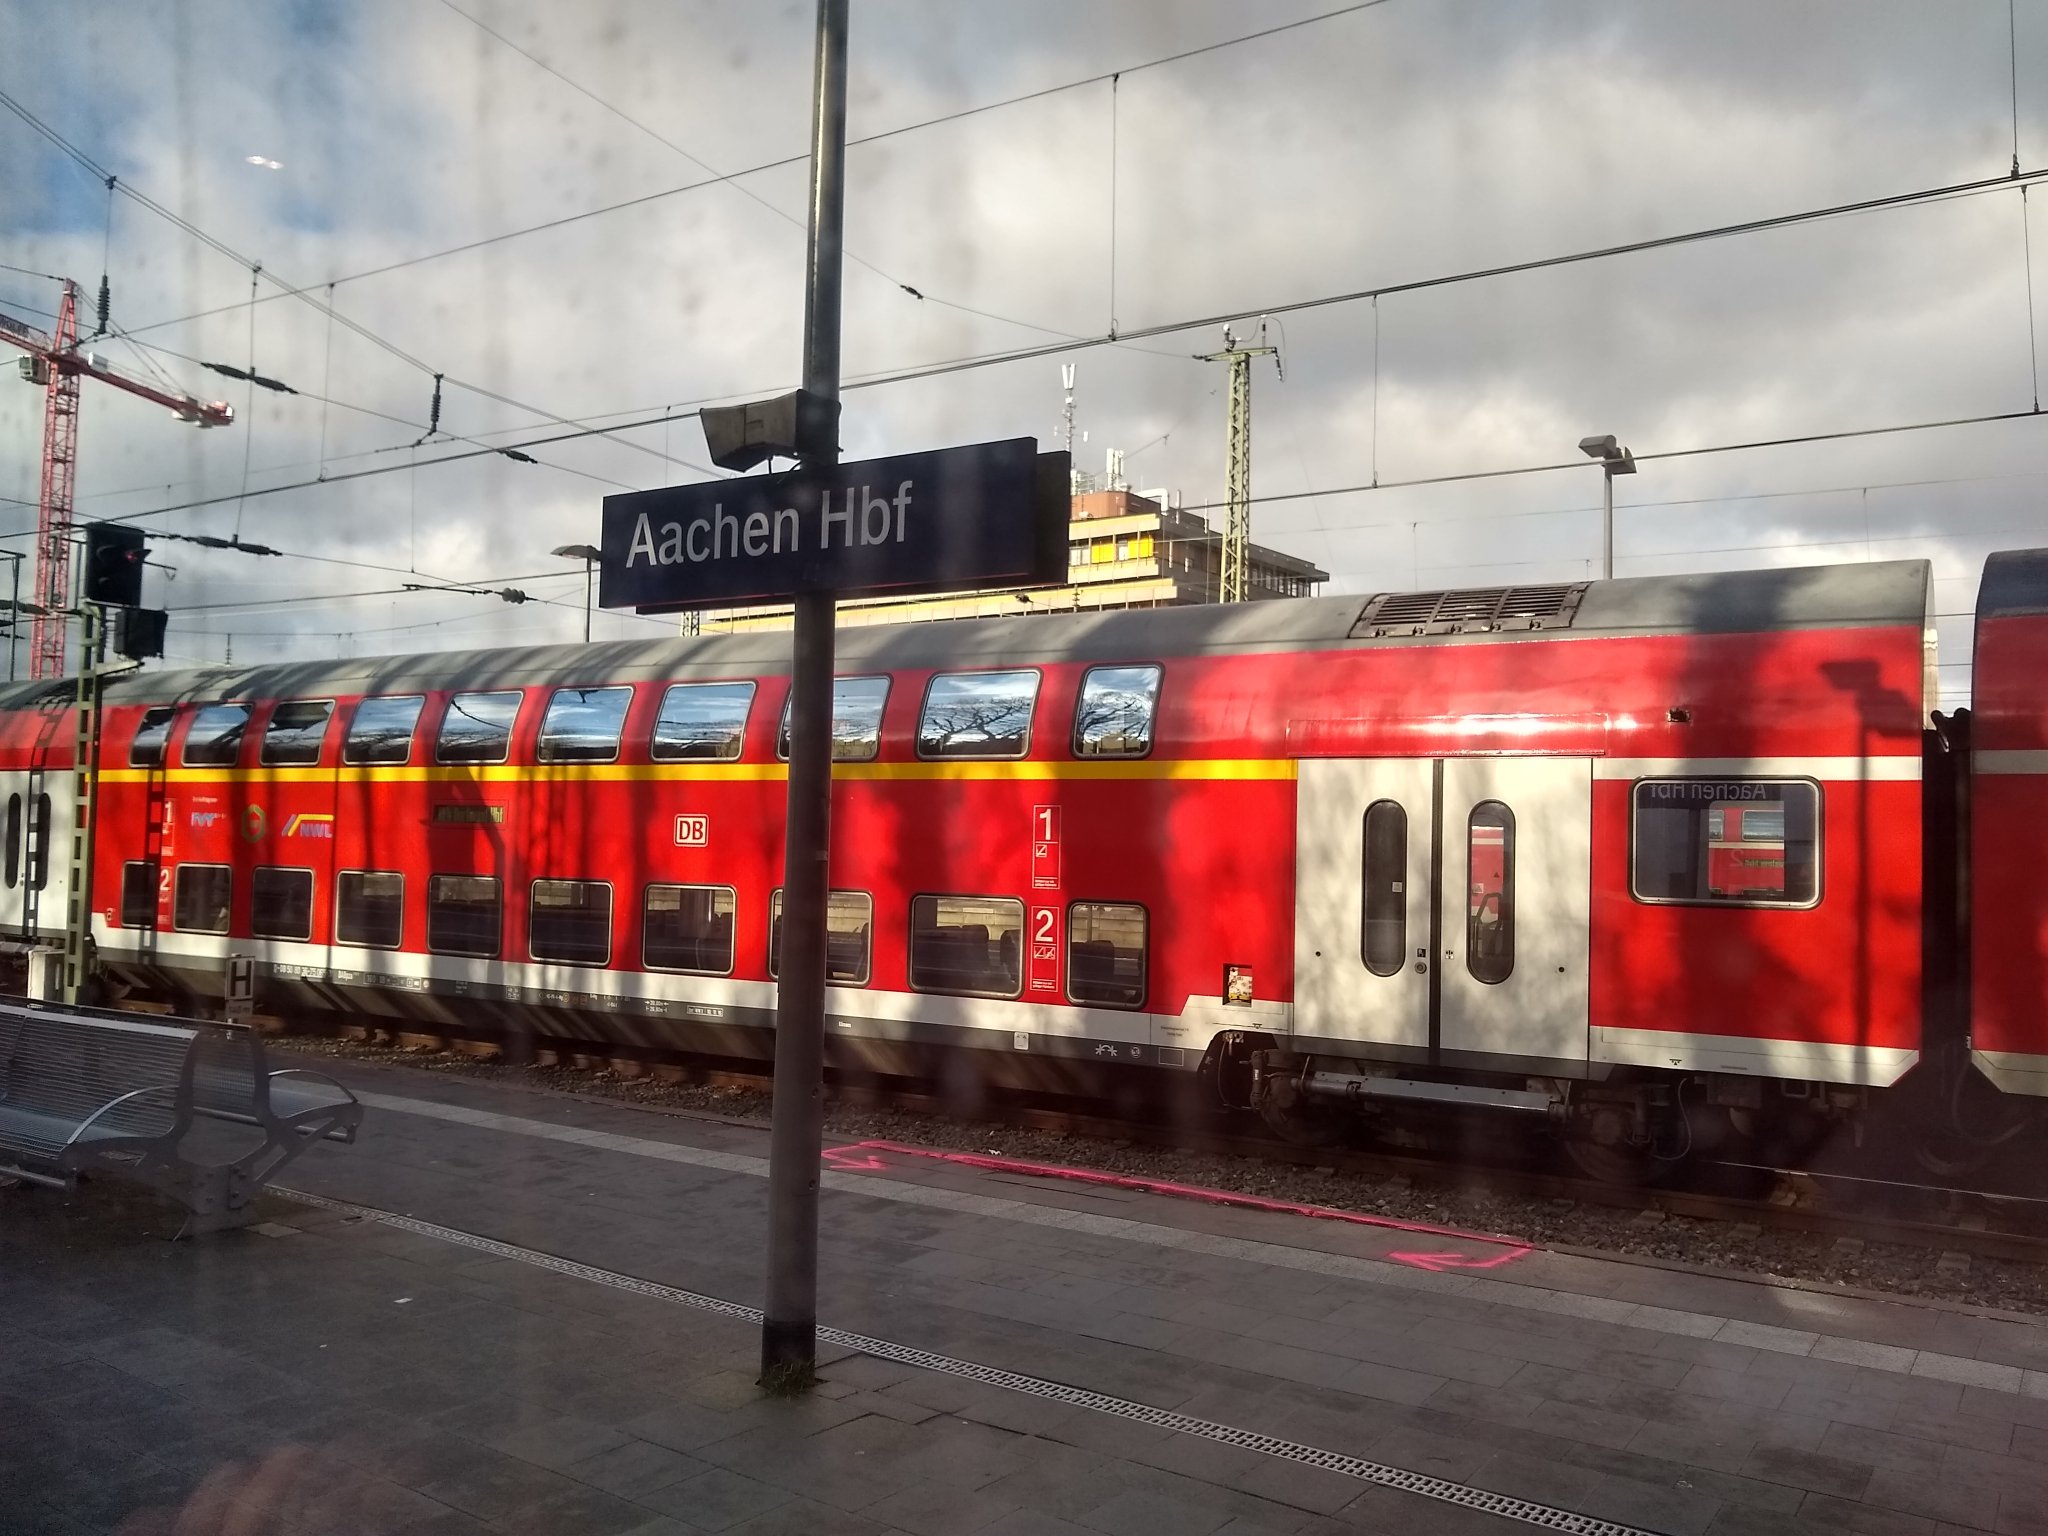 Platform sign saying Aachen Hbf with a double-decker red DB regional train